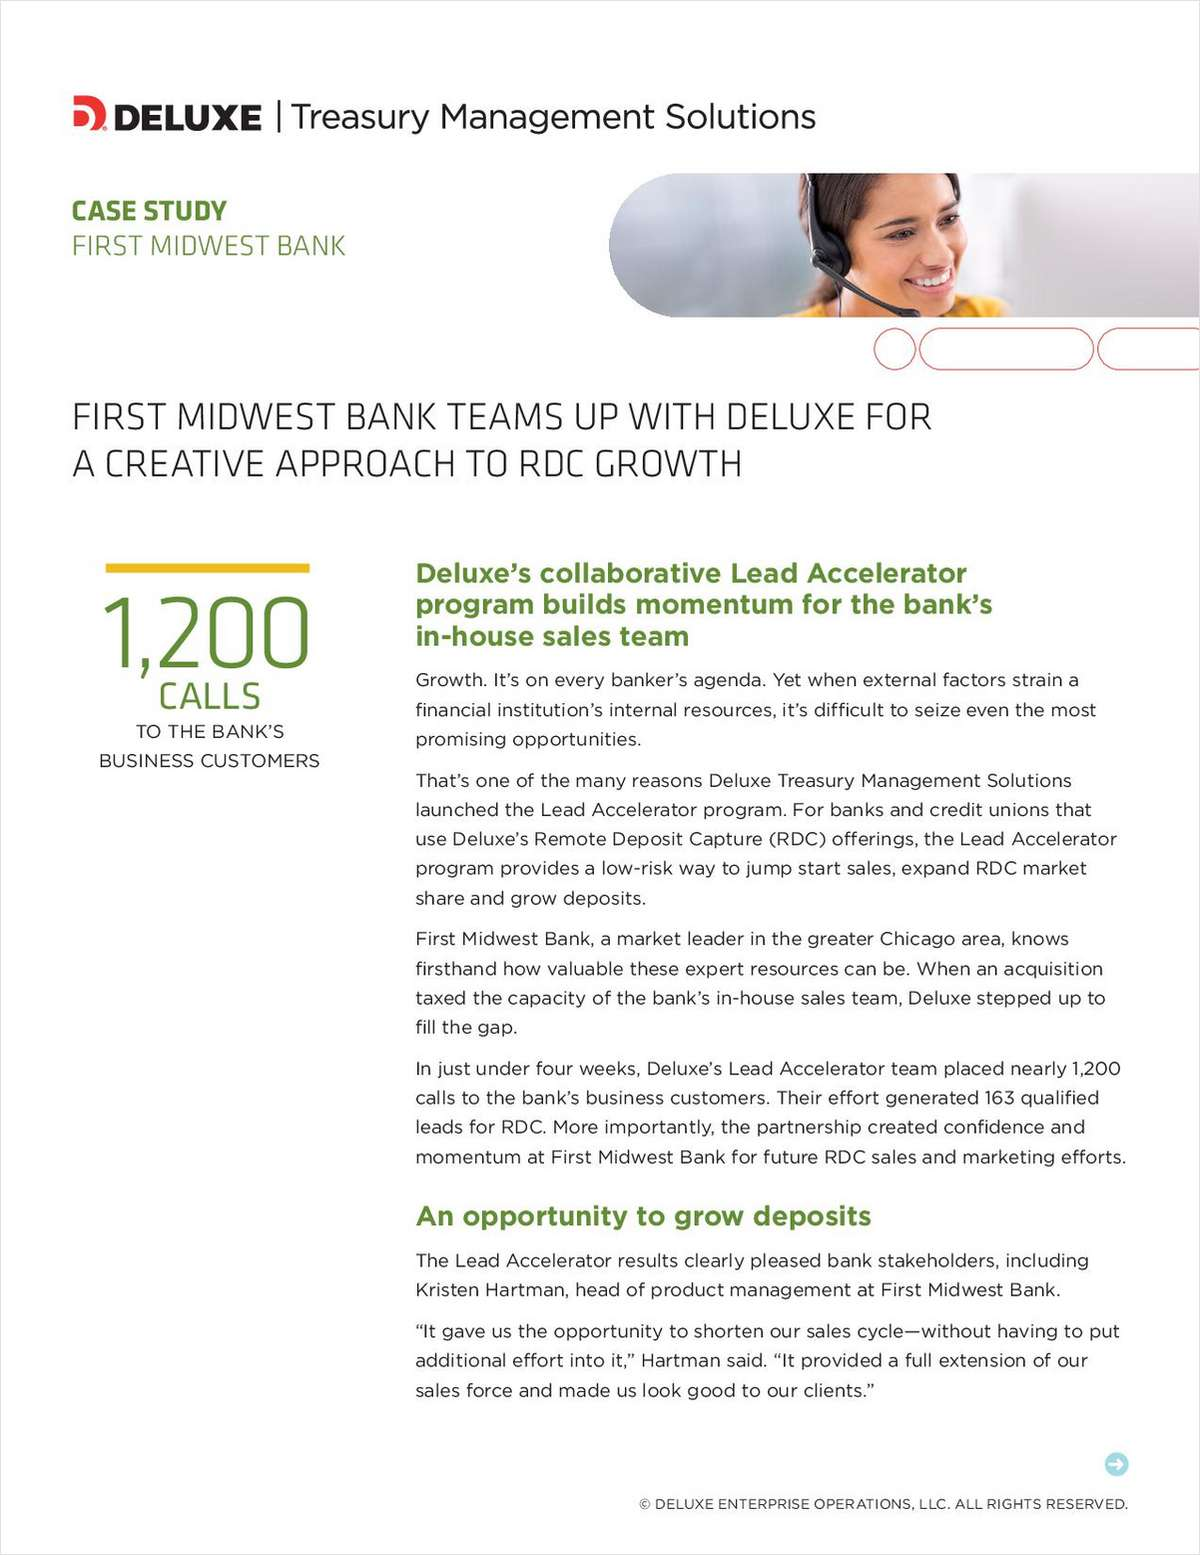 First Midwest Bank Teams Up With Deluxe for a Creative Approach to RDC Growth